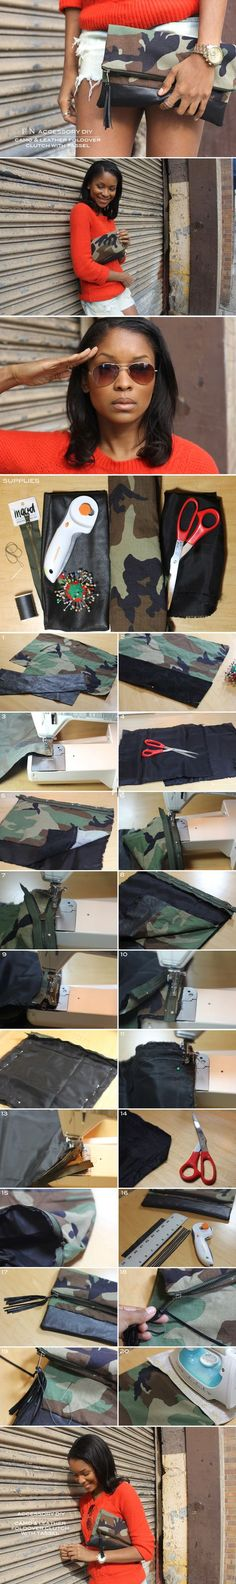 FRUGAL-NOMICS.COM DIY:  Camo and Leather Foldover Clutch with Tassel #DIY #Camo #Tassel #Clutch | Details on Frugal-nomics.com/diy